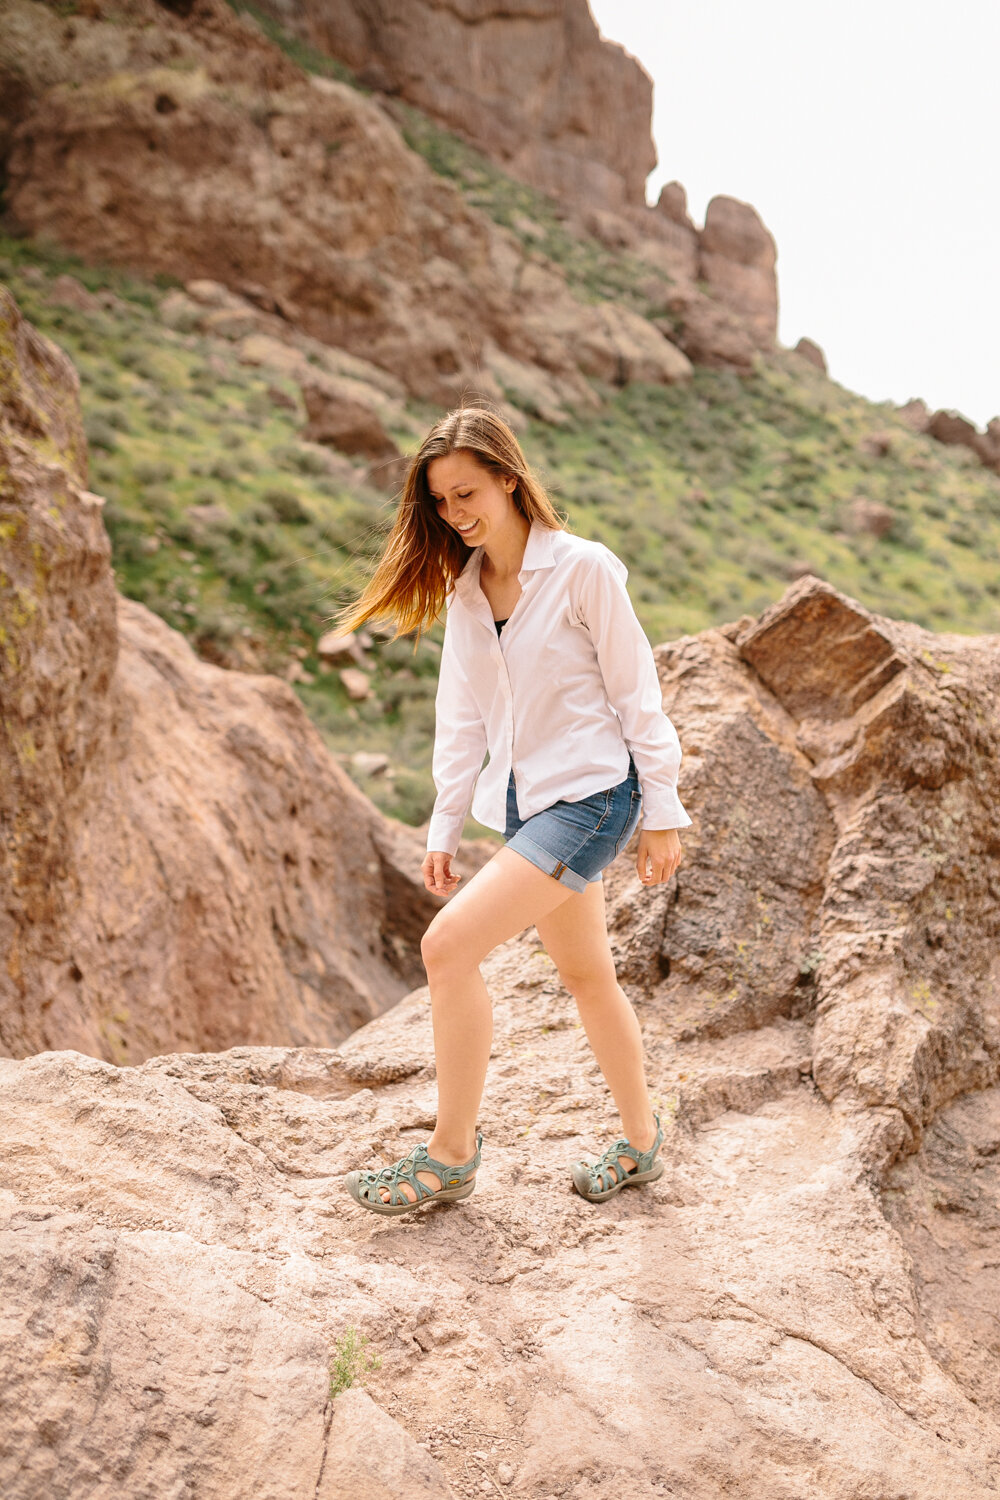 Superstition Mountains Corrie Hiking - March - Corrie Mick Photography-15.jpg